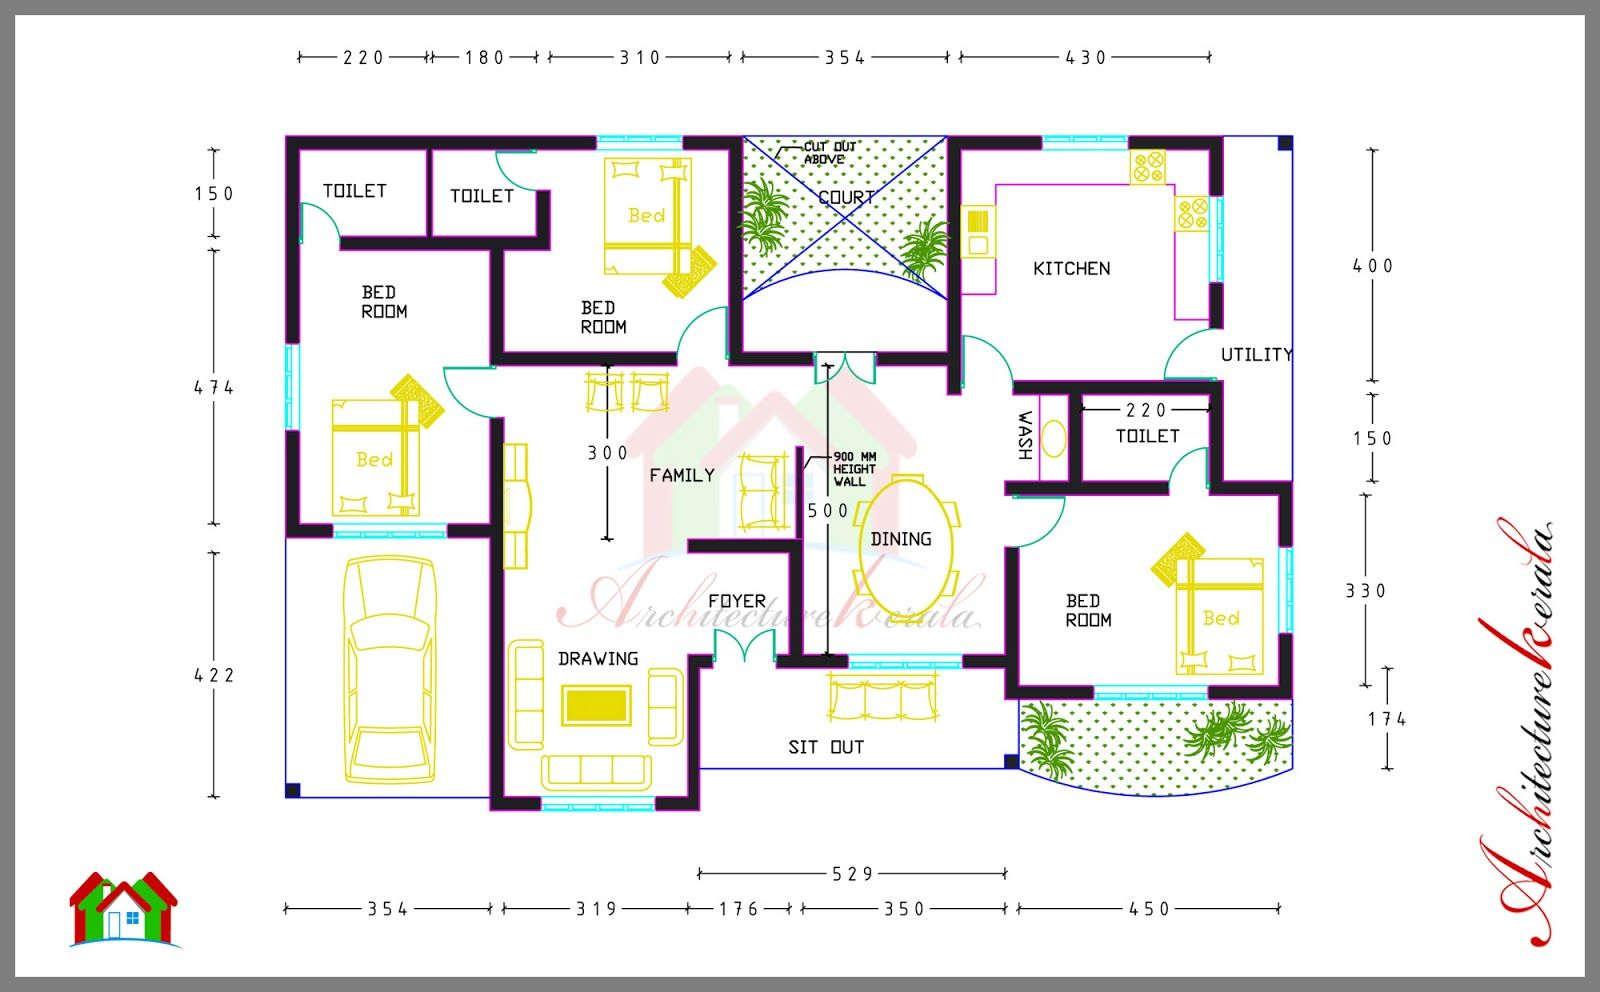 South Indian House Design Plans In 2020 New House Plans House Plans With Photos Architectural House Plans